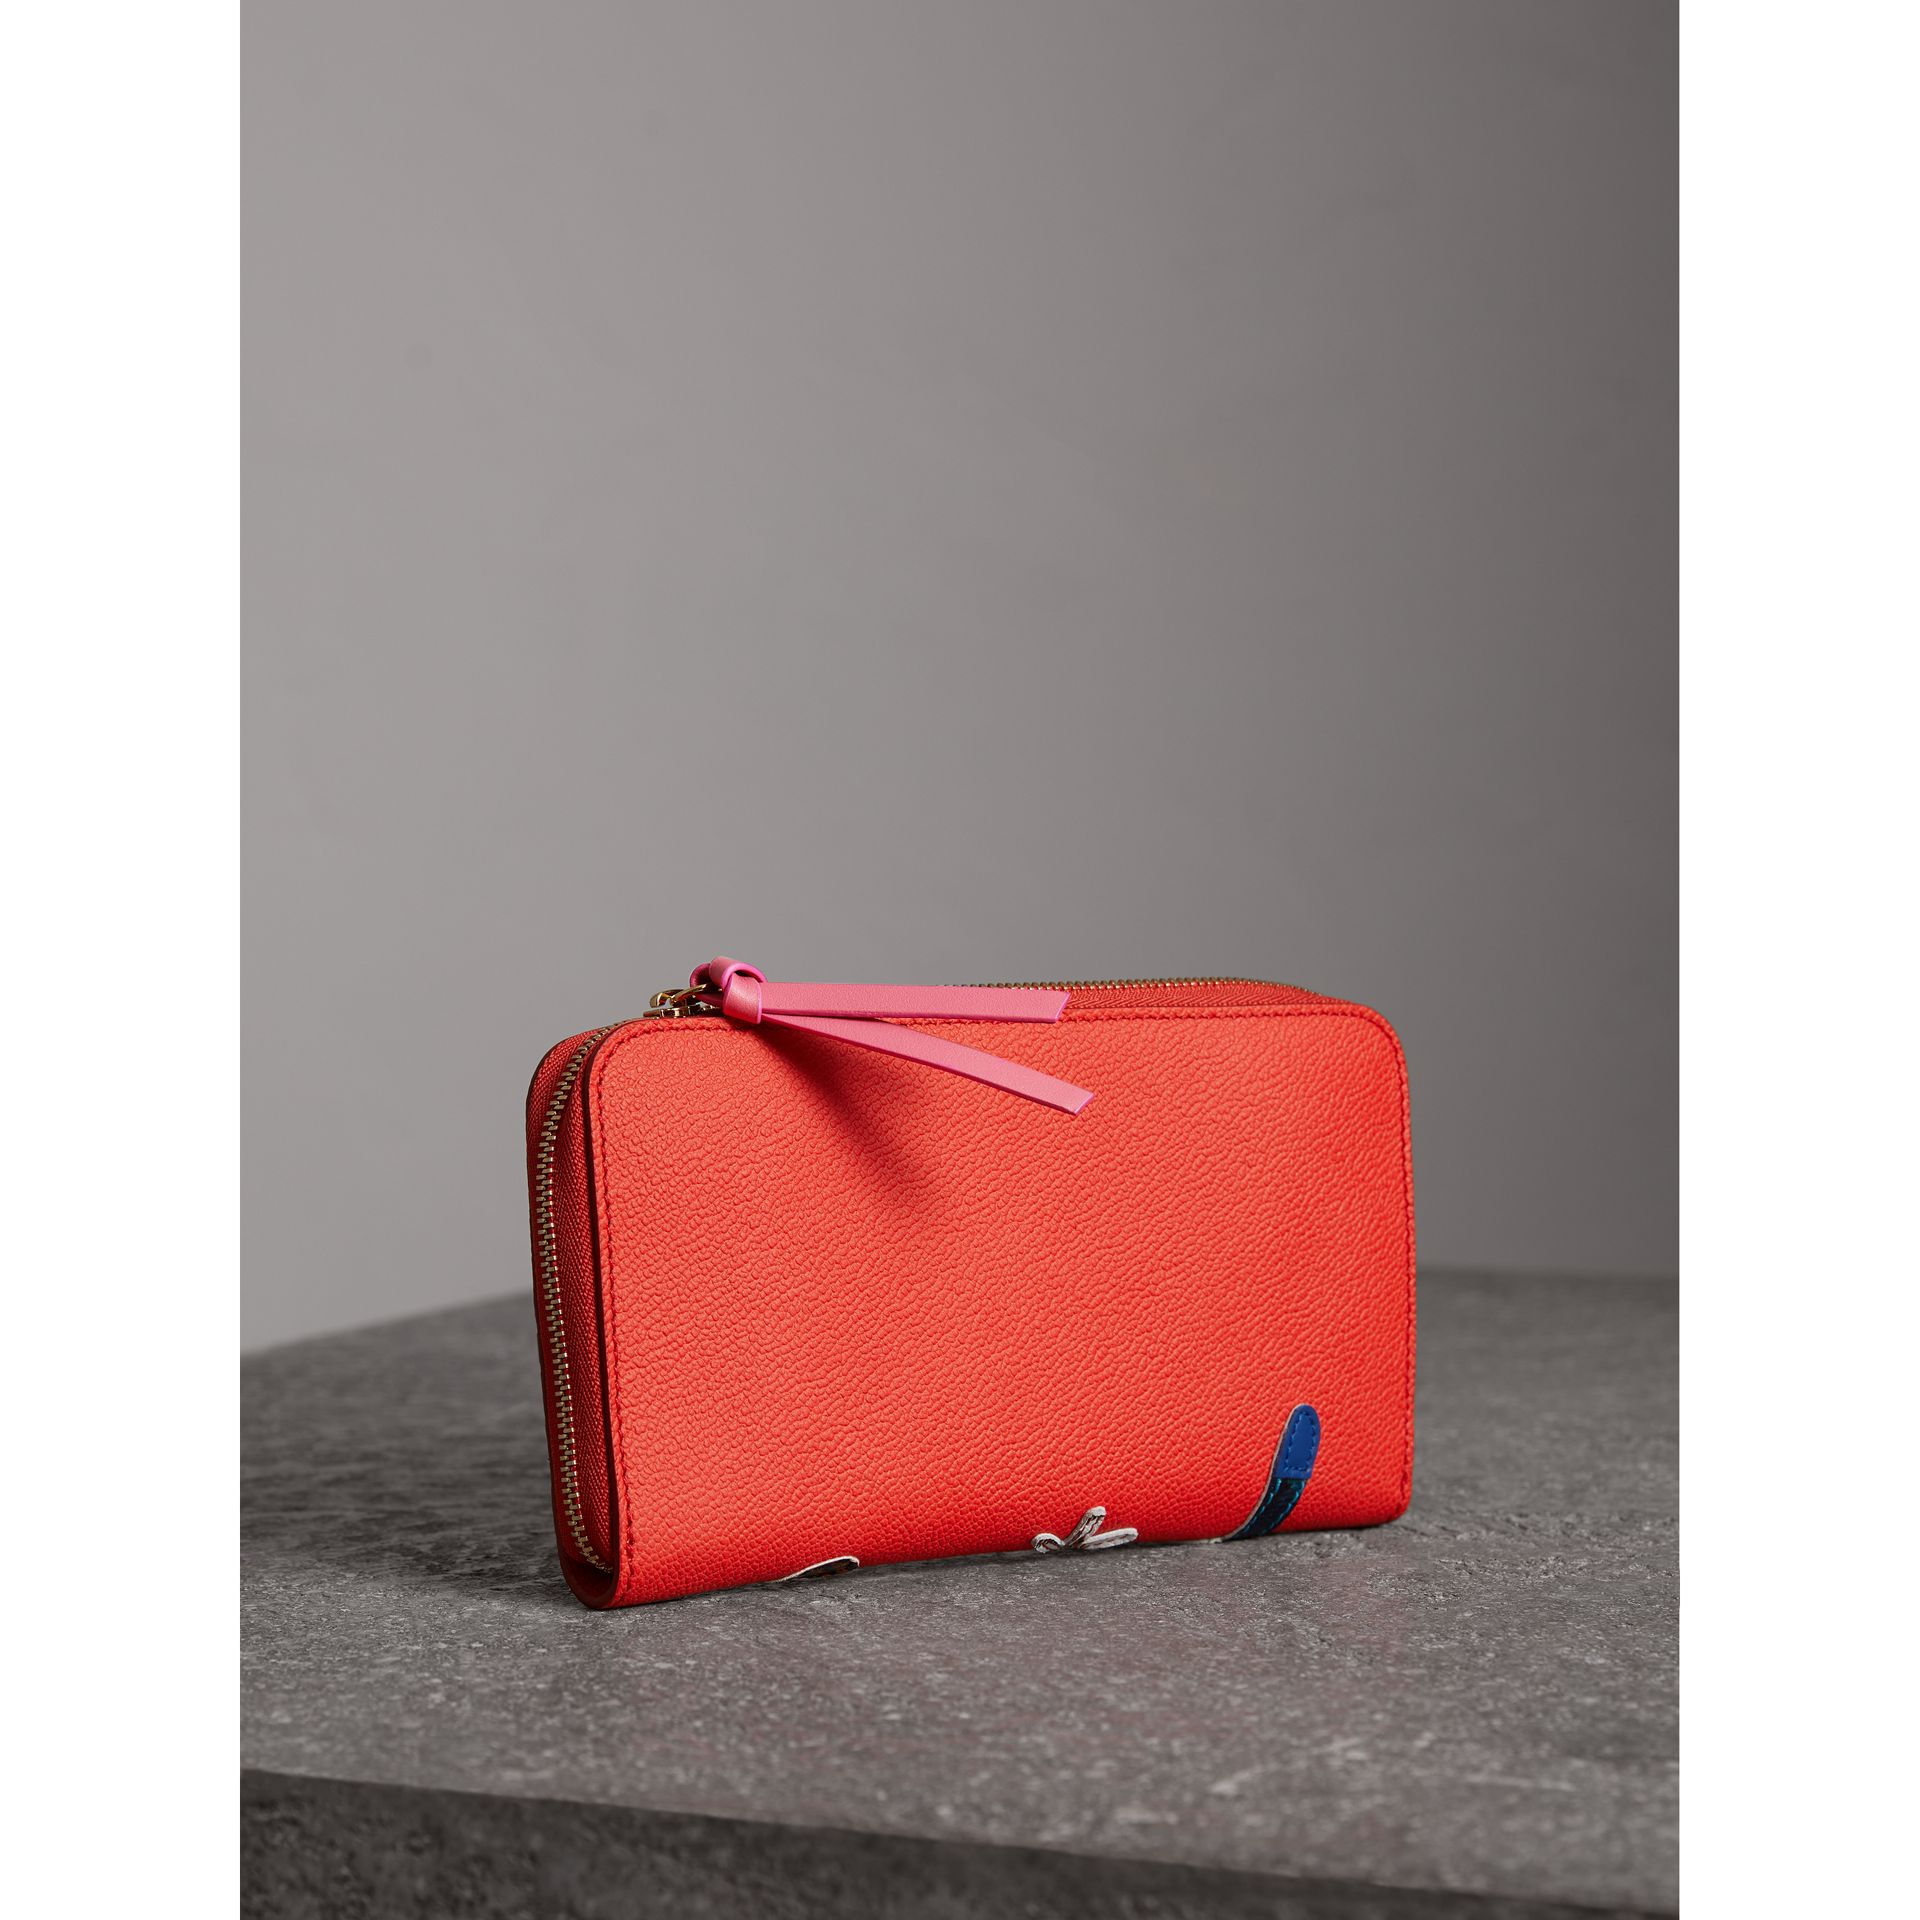 Creature Appliqué Check Leather Ziparound Wallet in Orange Red - Women | Burberry United Kingdom - gallery image 2